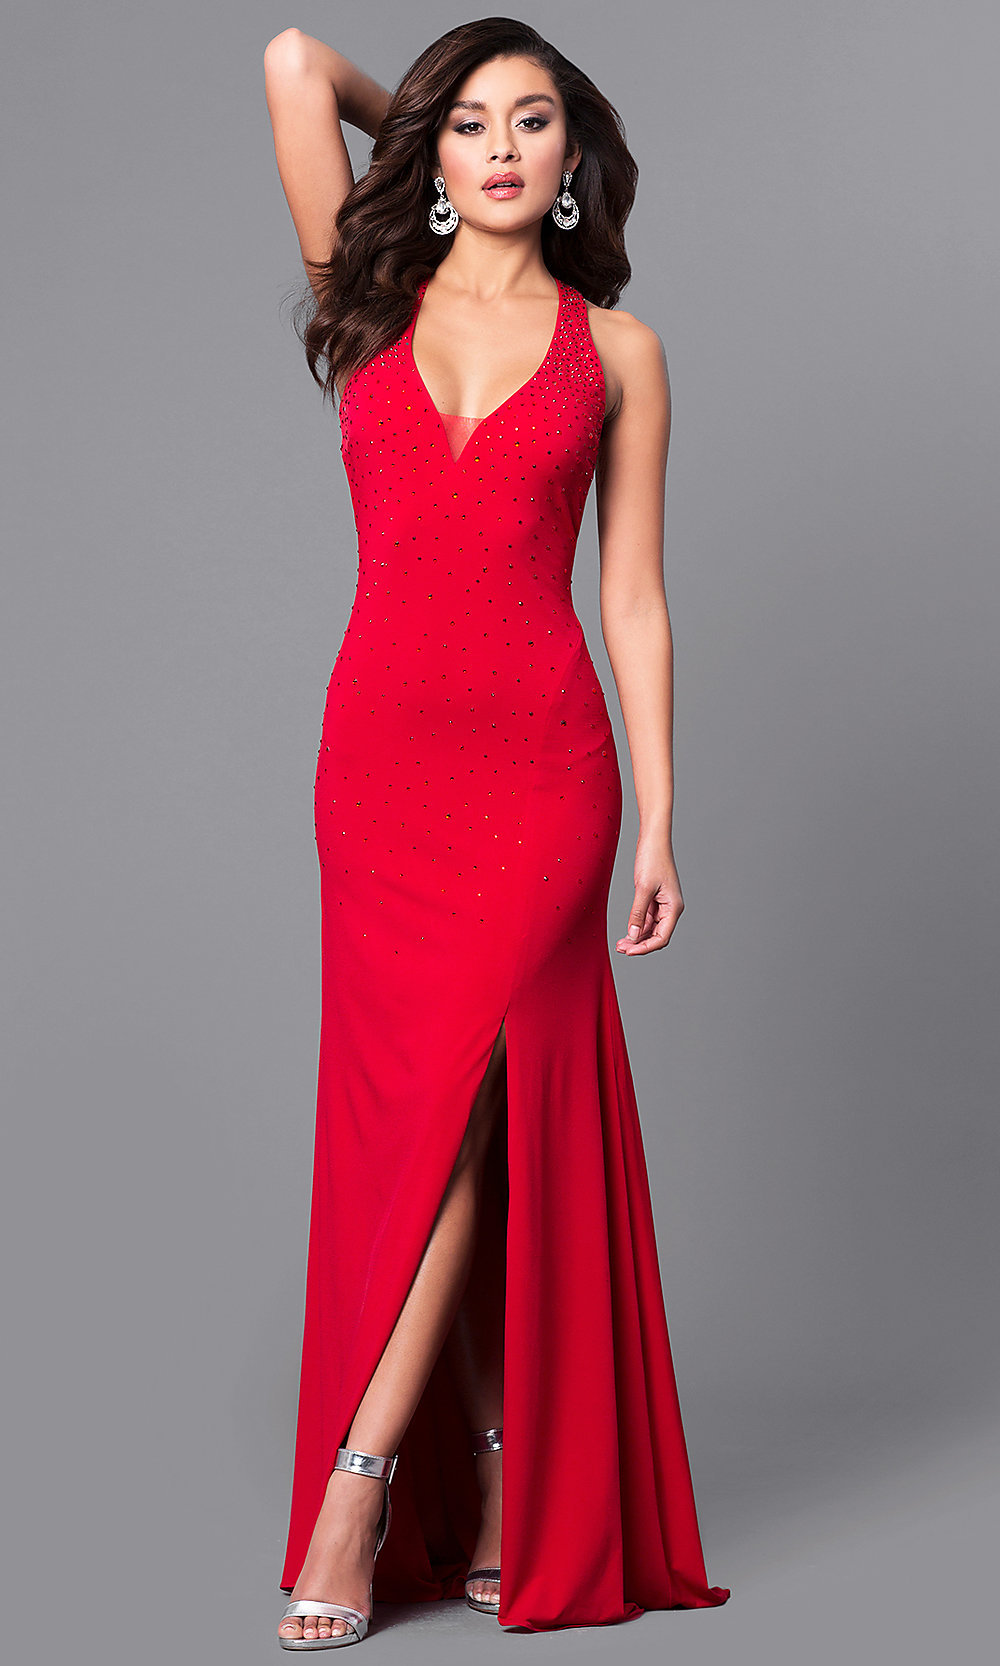 openback vneck long red prom dress  promgirl